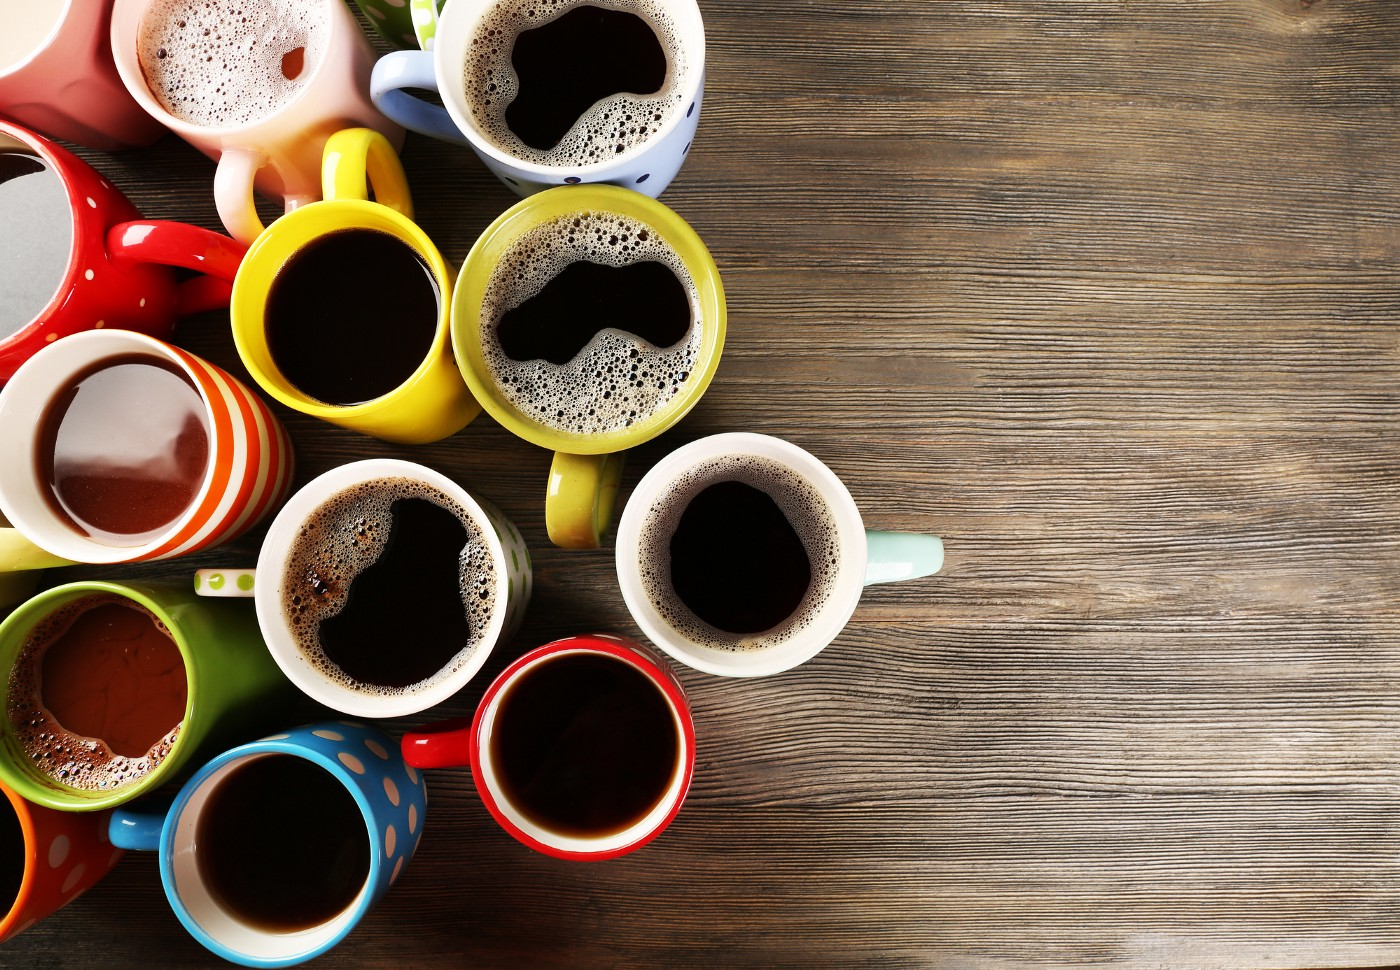 A table with several cups of coffee